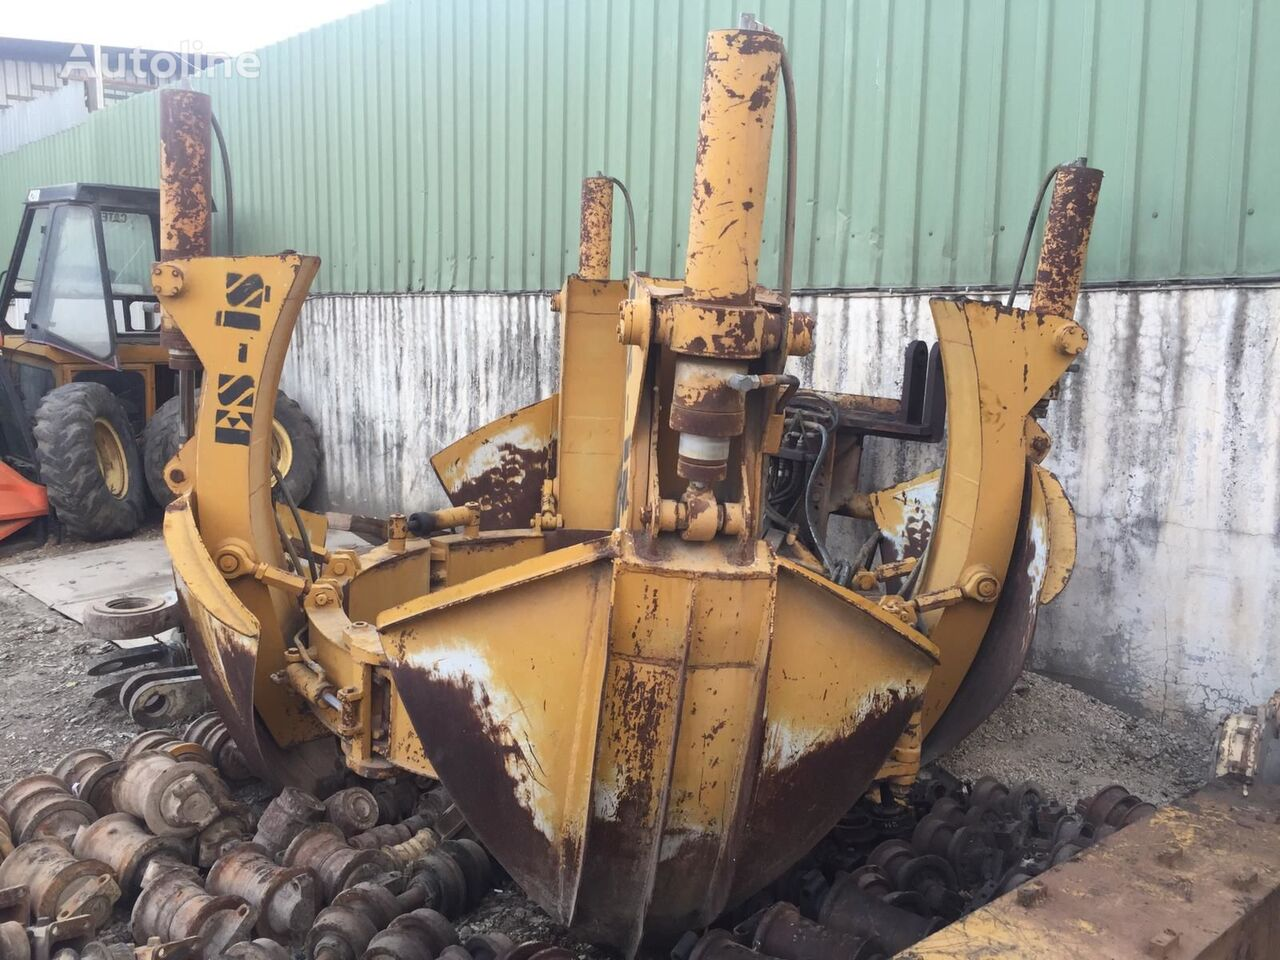 USED DIAMETER INTERNAL 2 METERS HYDRAULIC TREE REMOVAL EQUIPMENT recambios para grúa autocargante